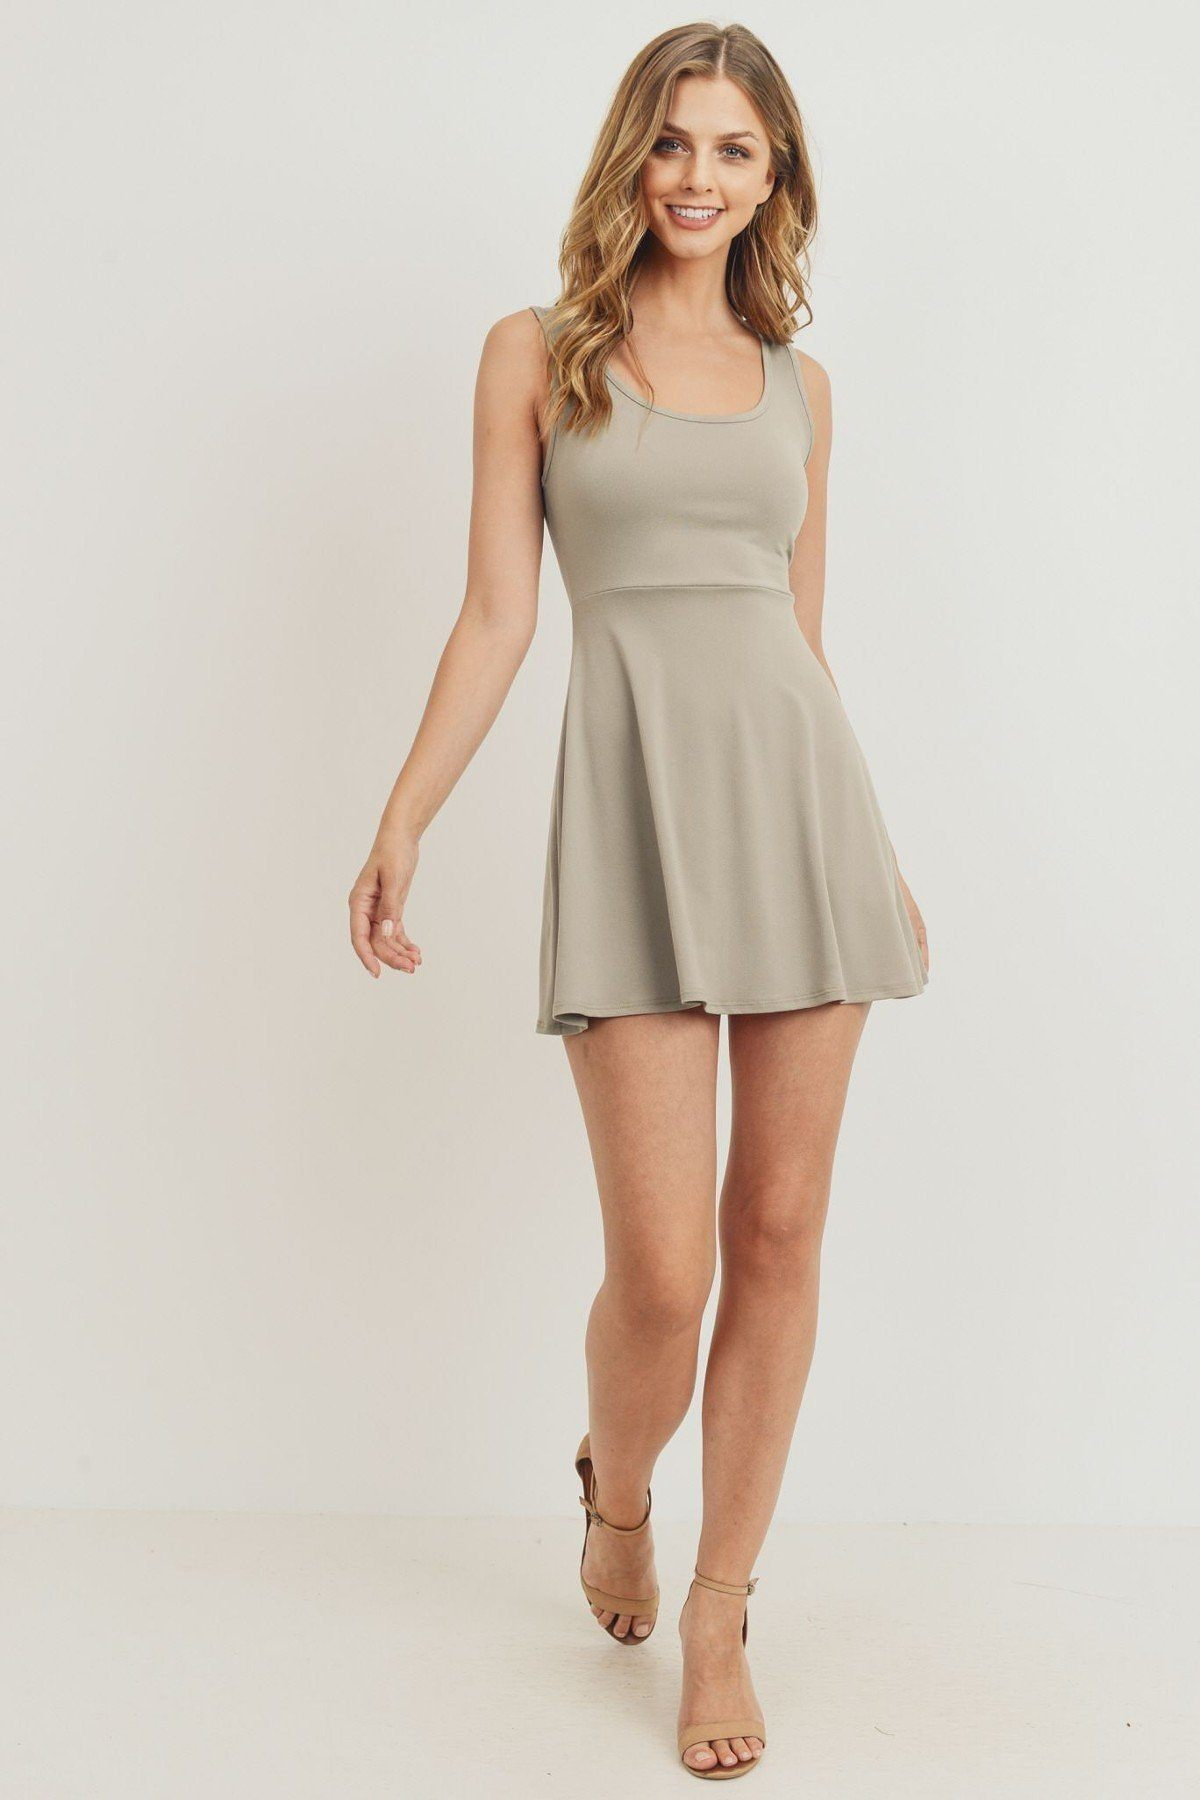 It's Friday - Slim Fit Mini Dress - The Luxstop